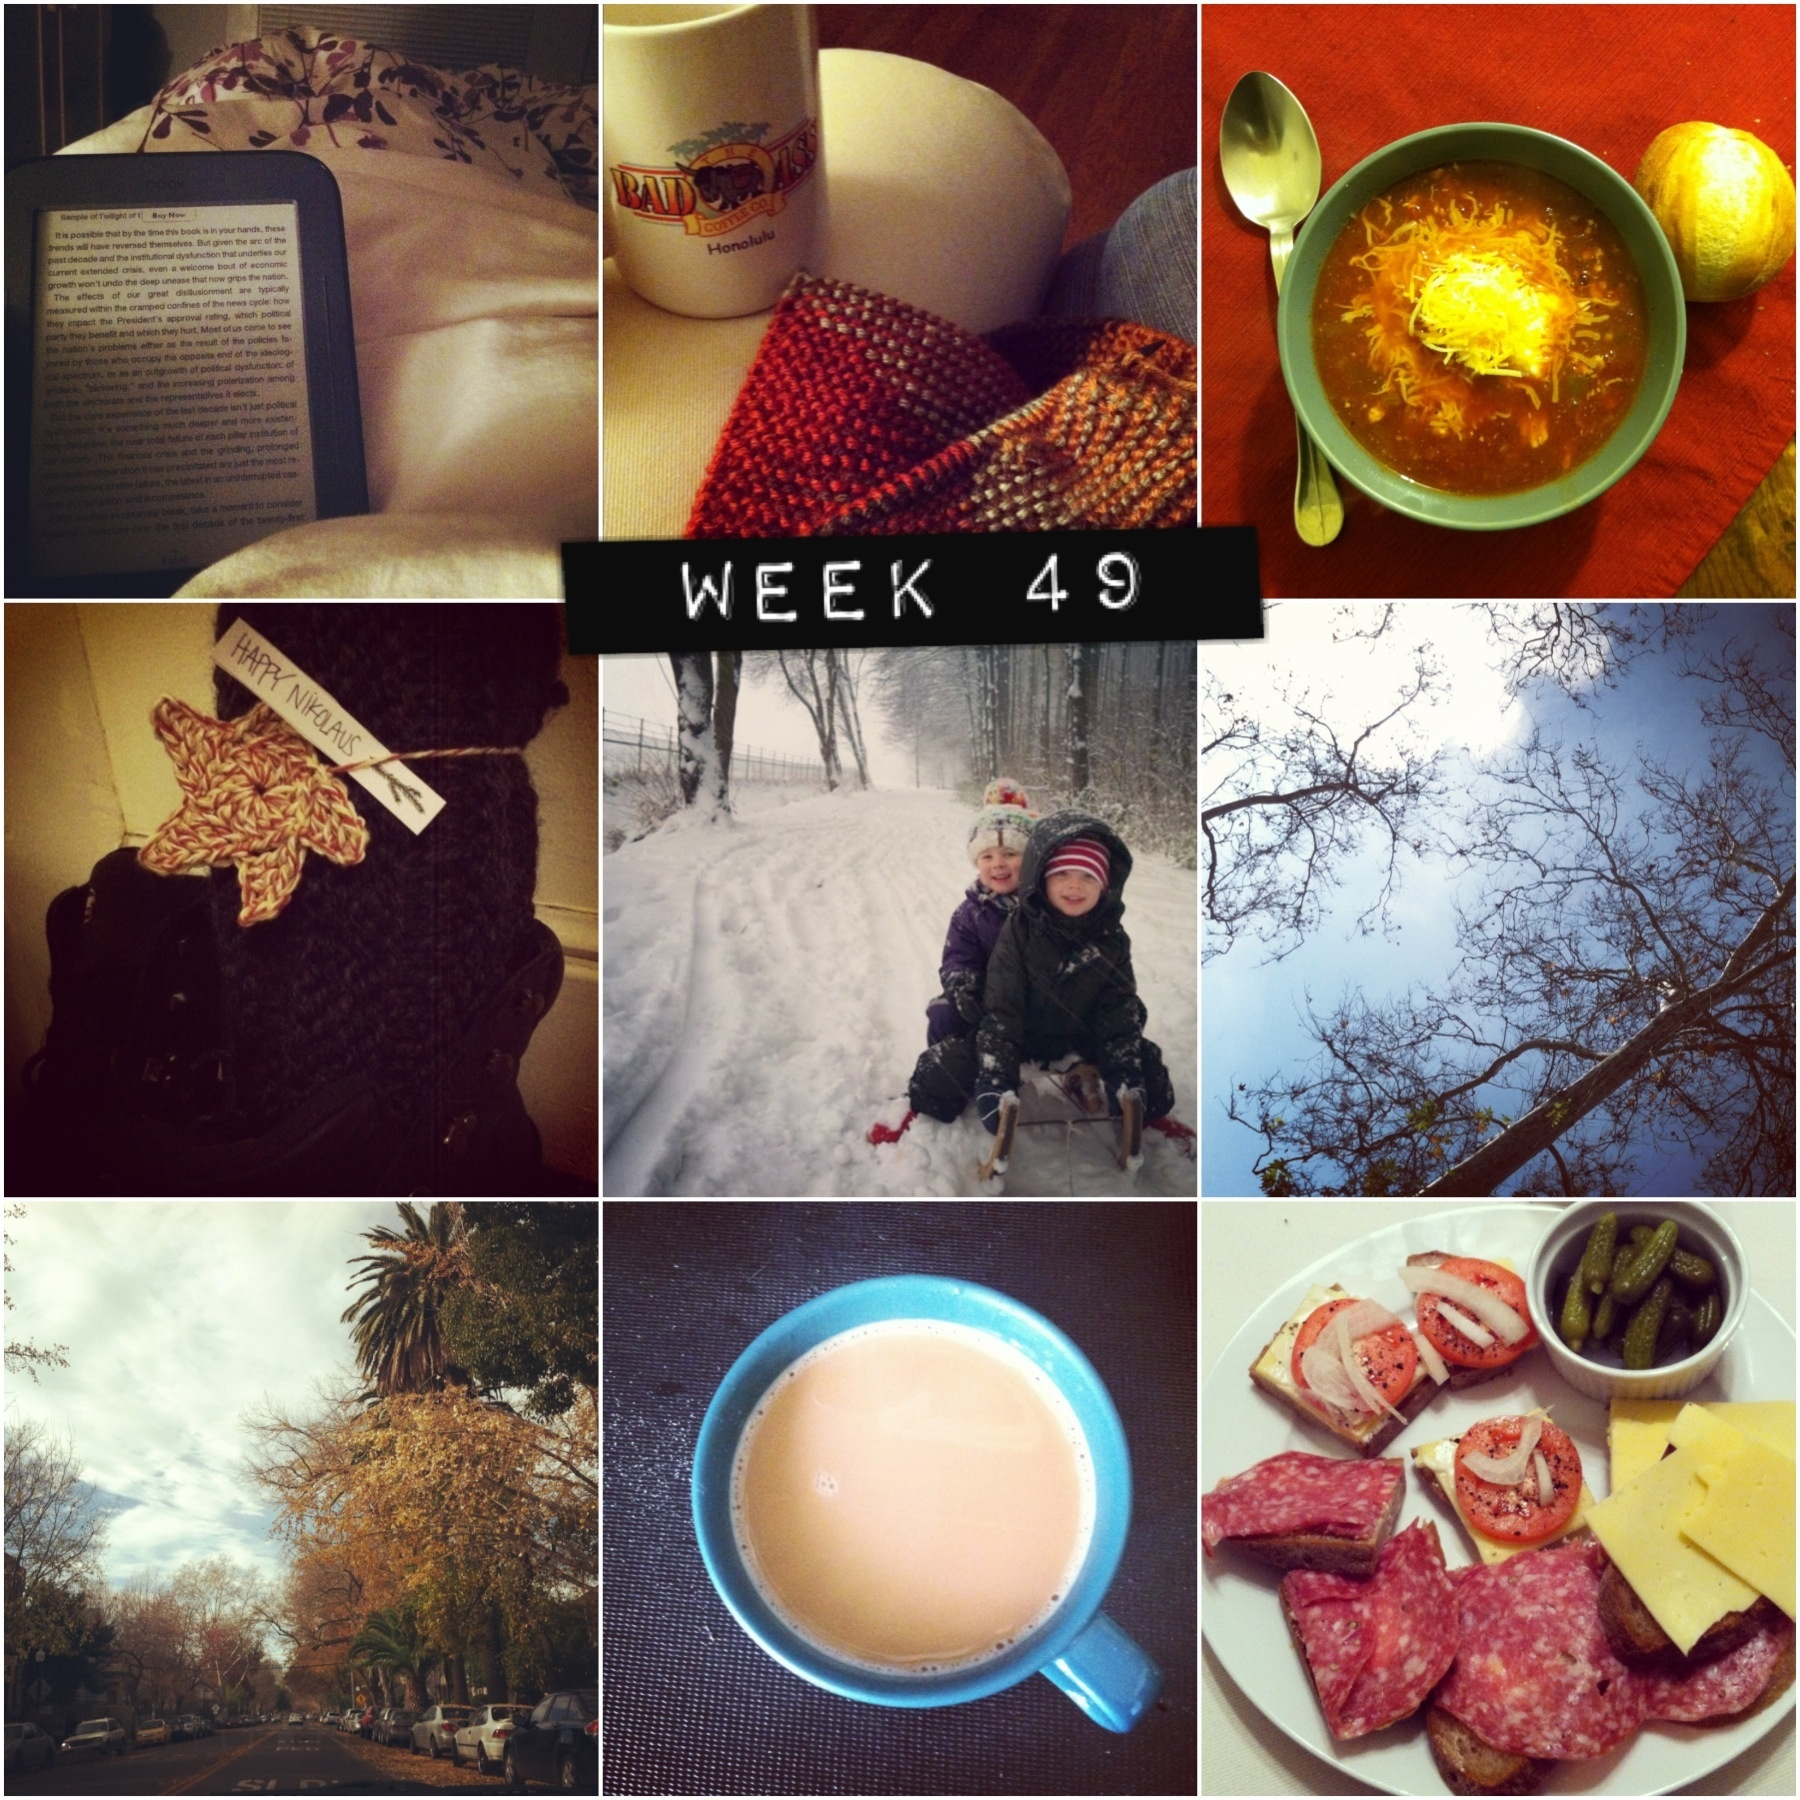 2012 in pictures: week 49